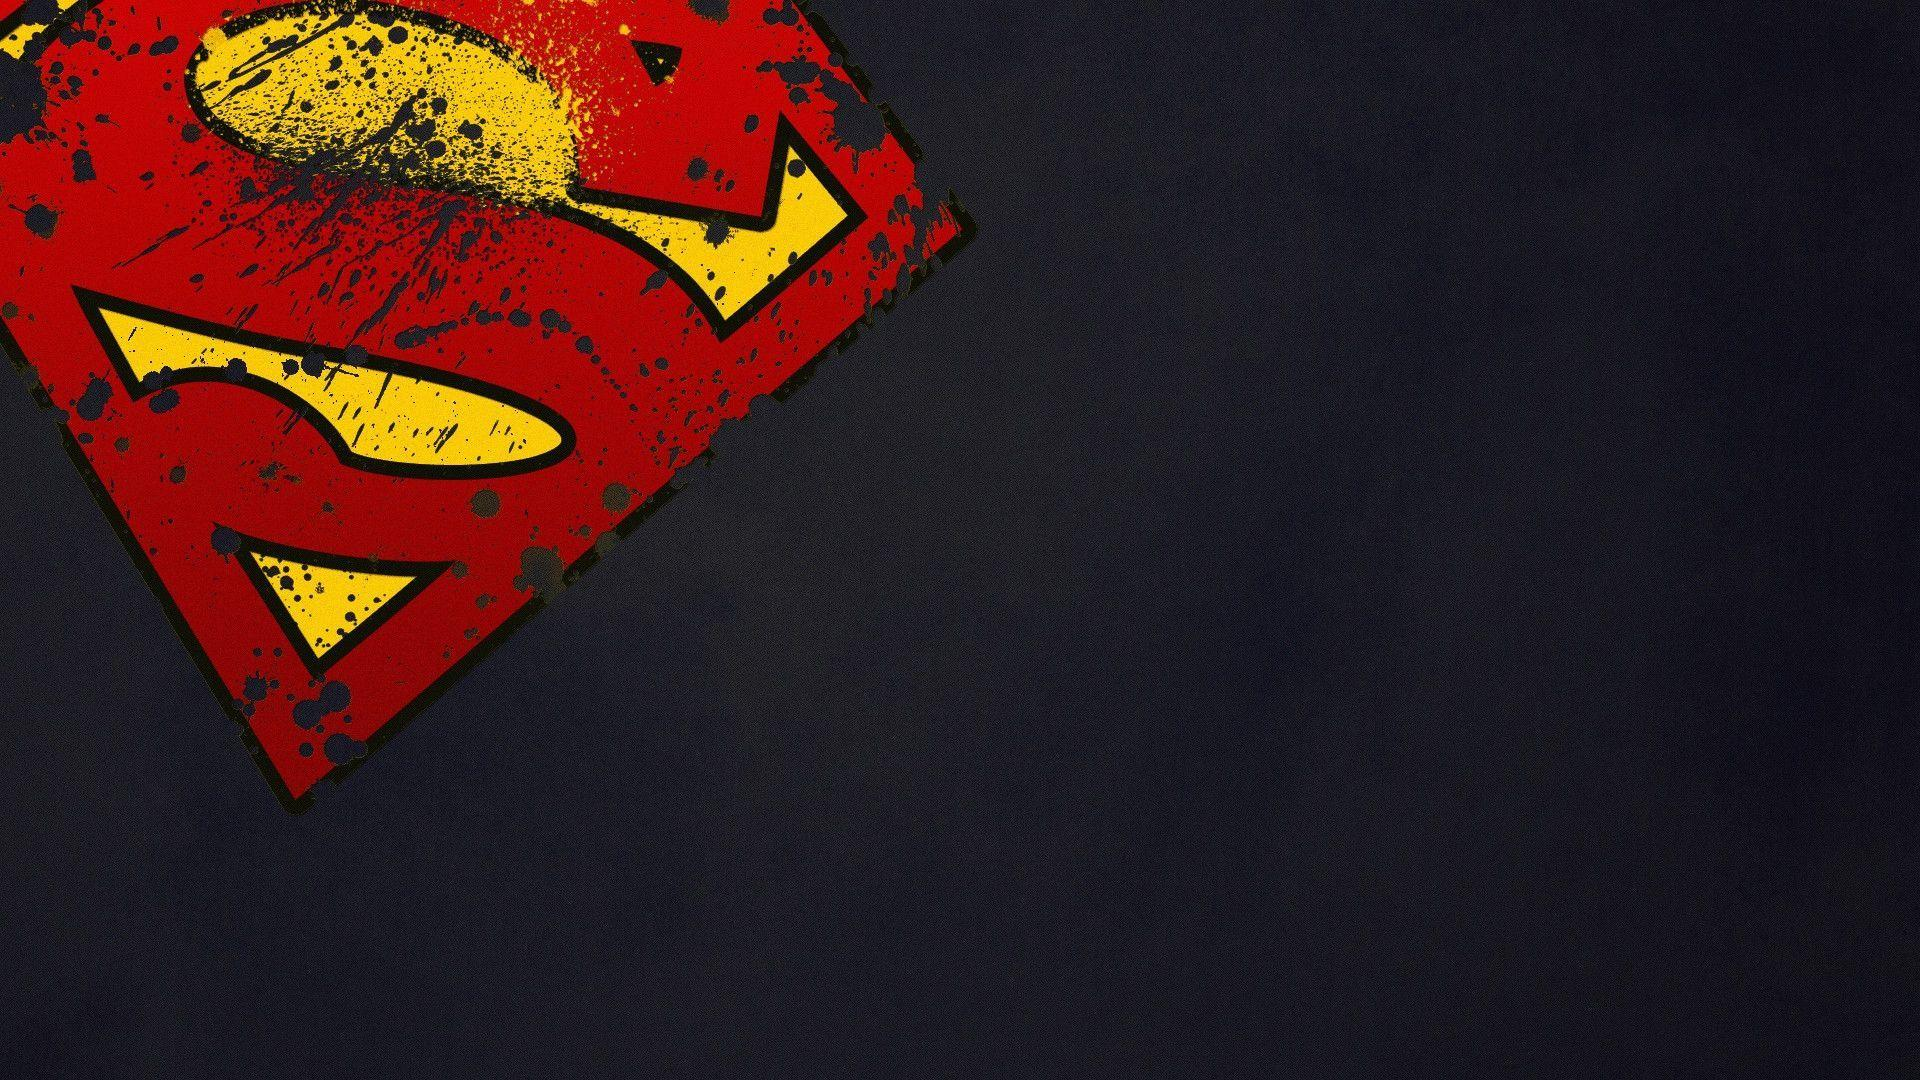 Superhero Logos Wallpapers Image & Pictures